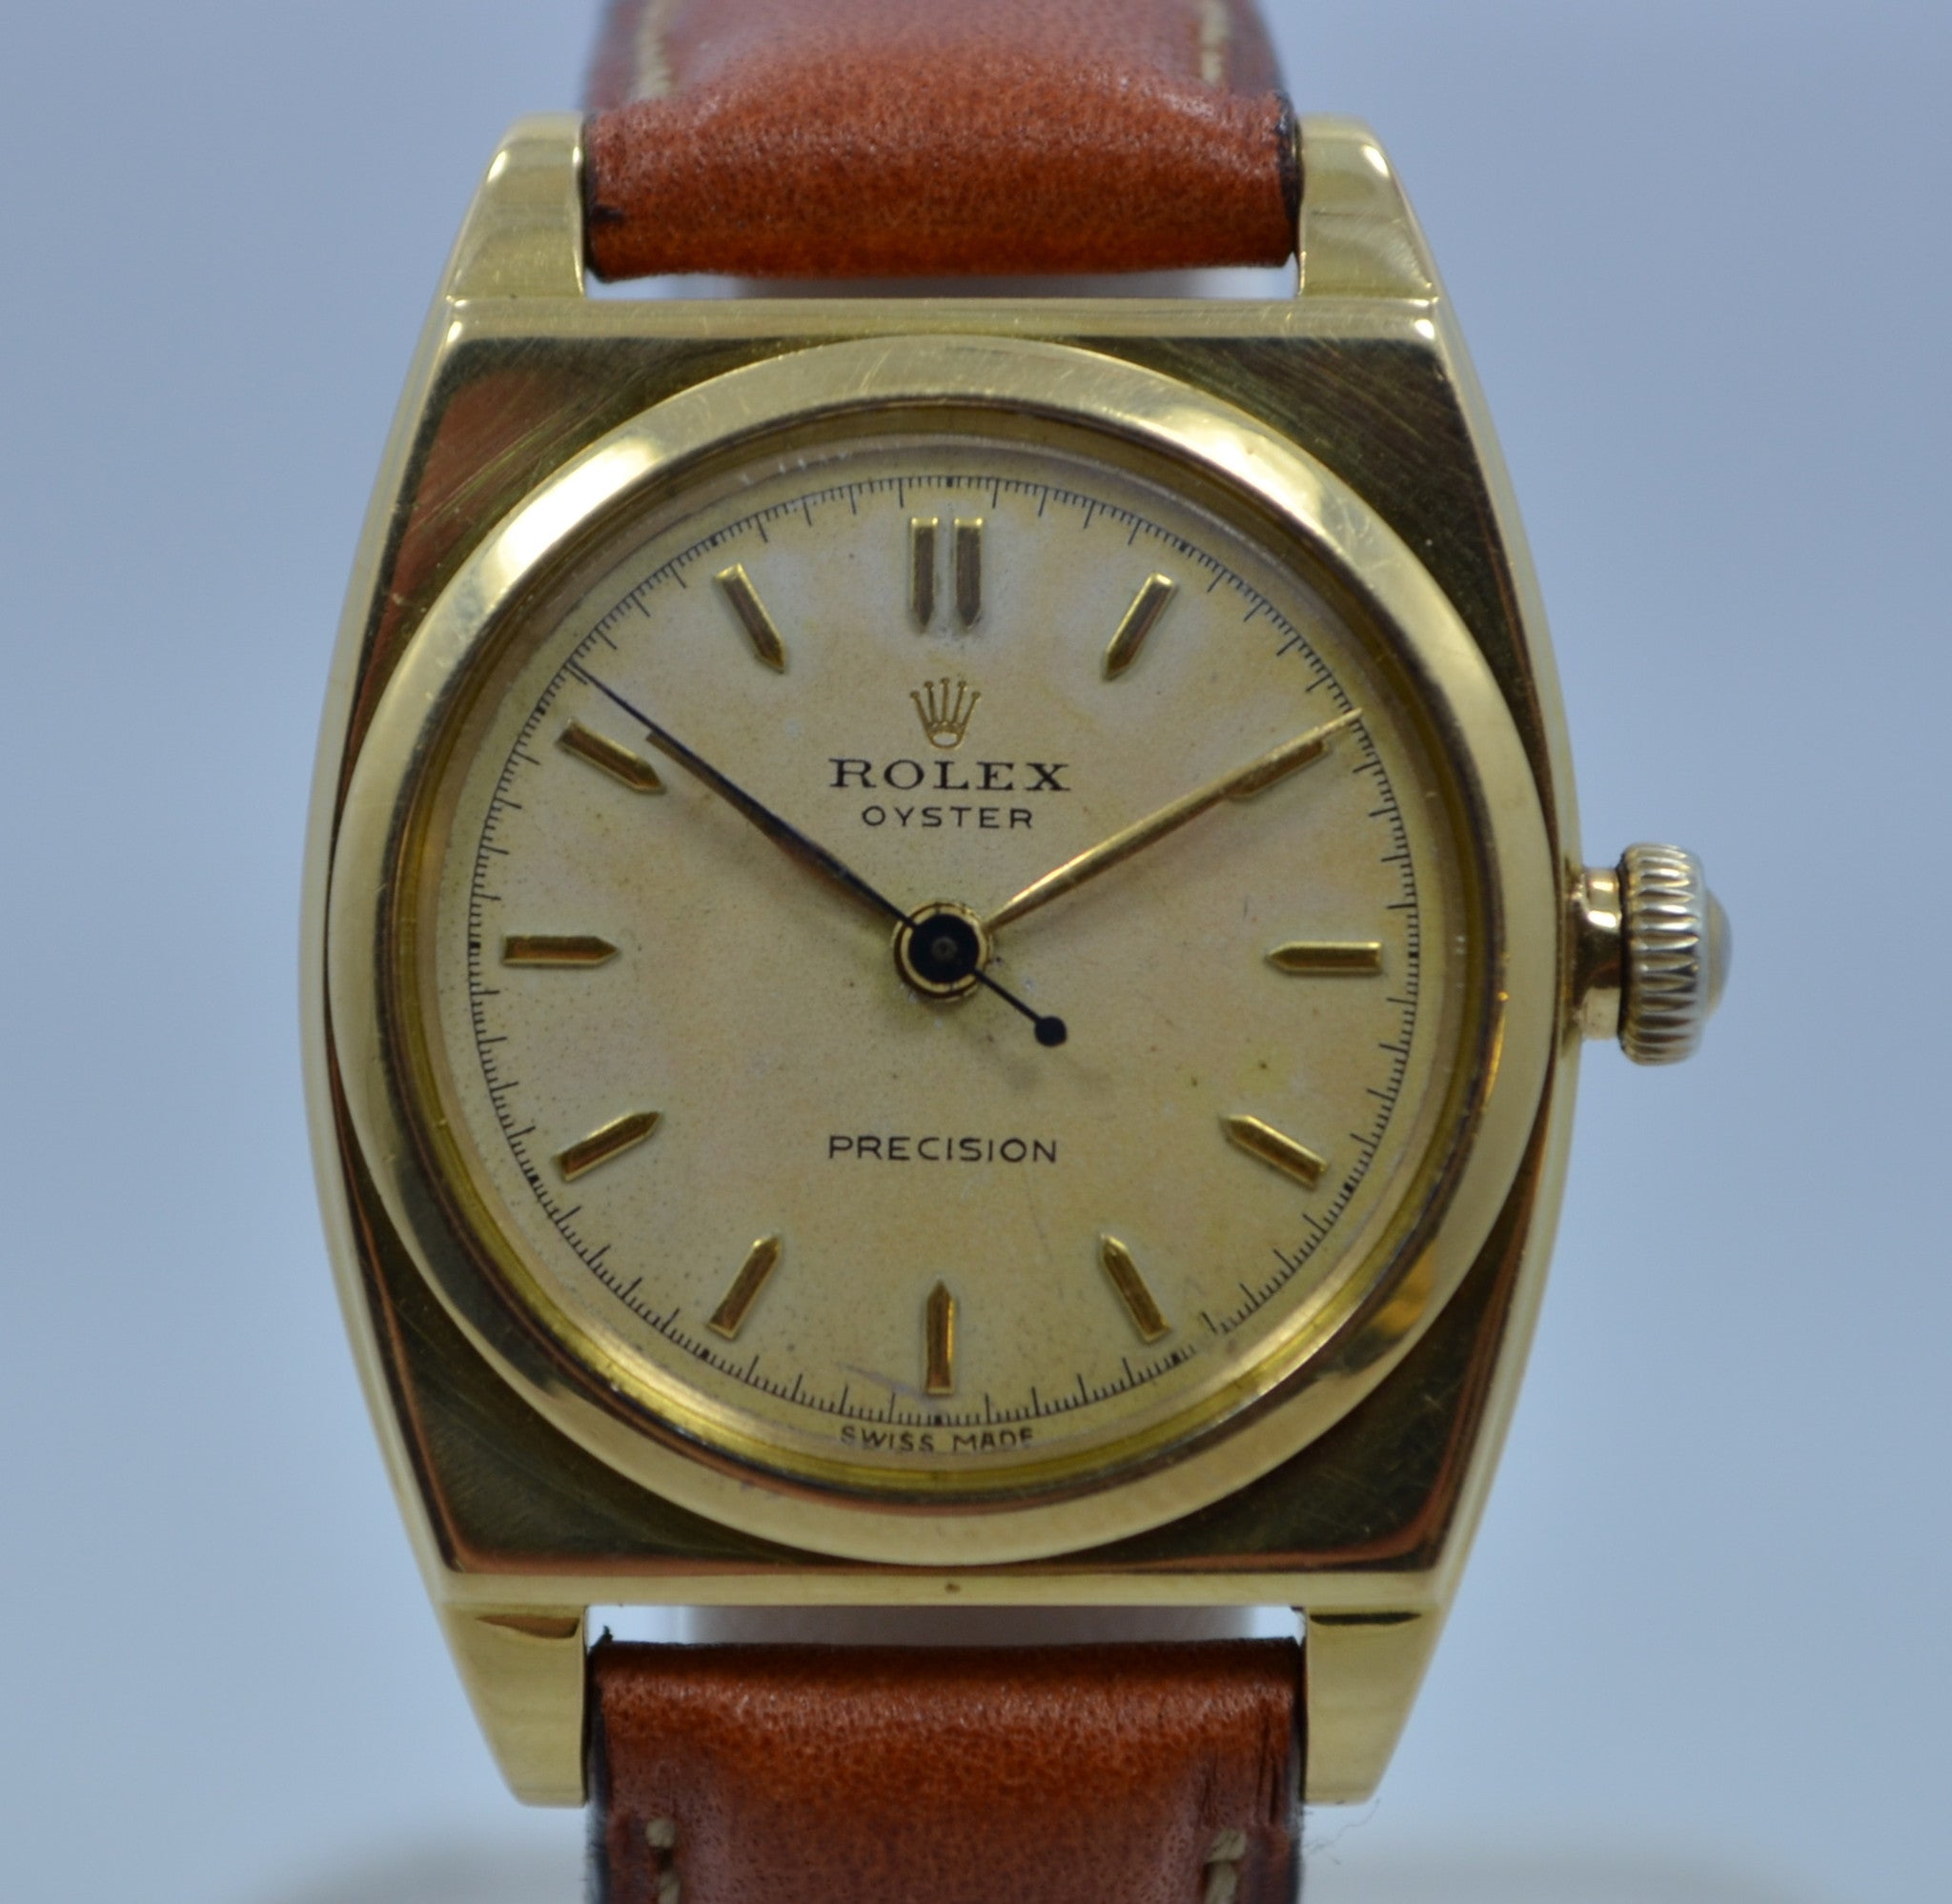 Vintage Rolex 3359 Viceroy 18K Yellow Gold 1934 Wristwatch - Hashtag Watch Company